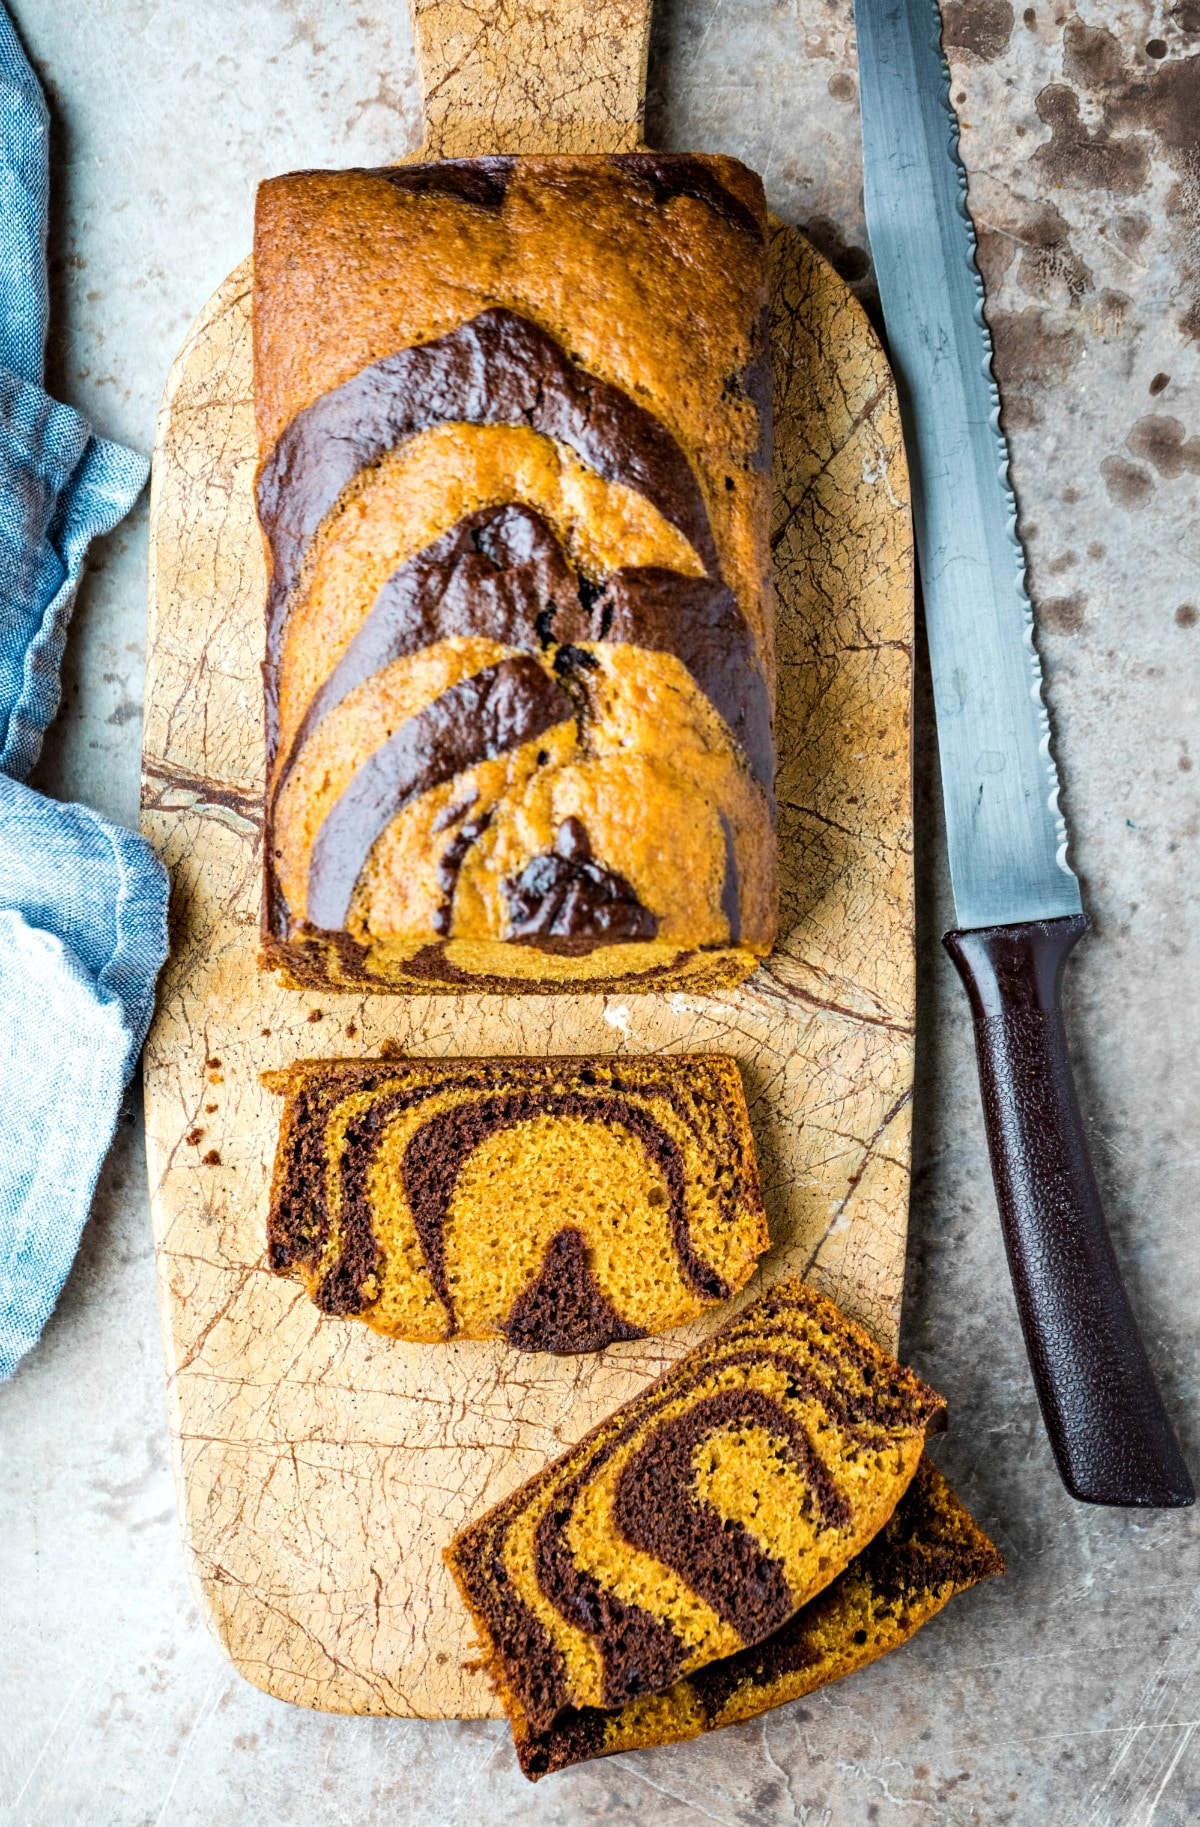 Loaf of chocolate marble pumpkin bread next to a bread knife